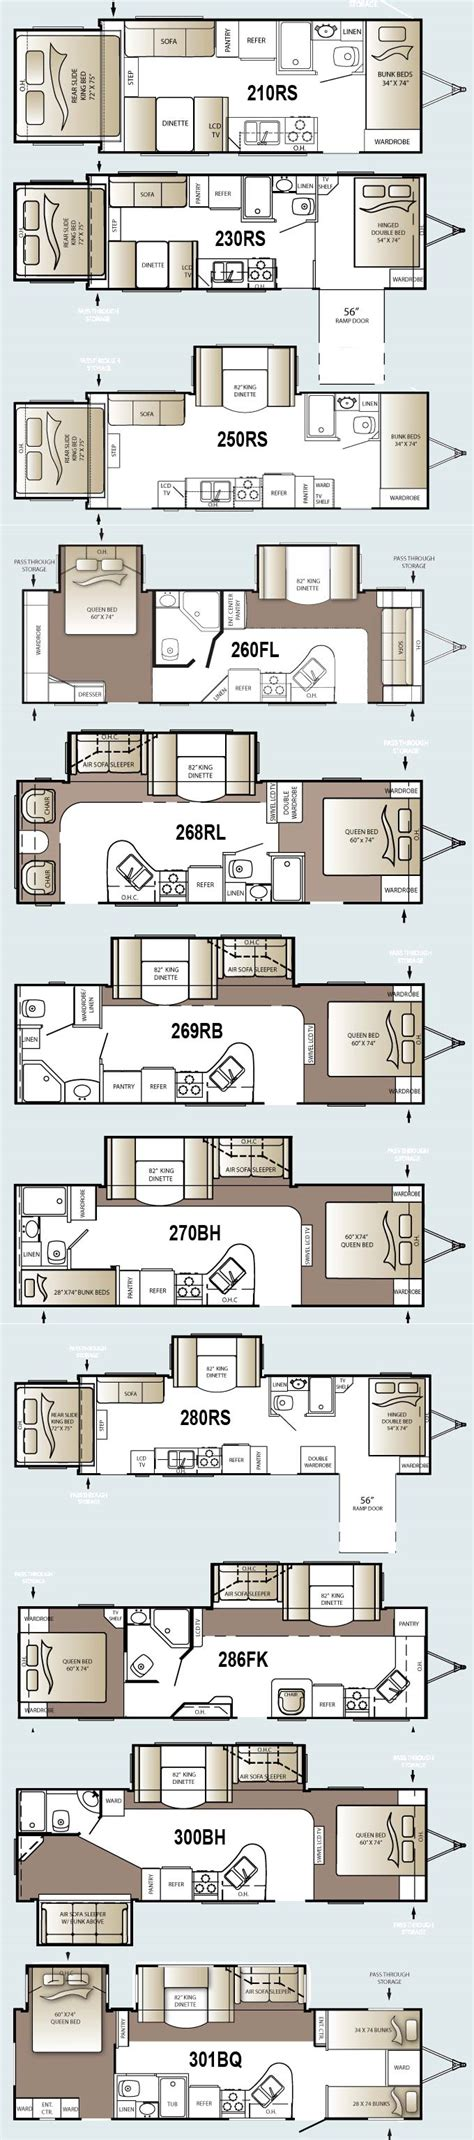 Outback Travel Trailer Floor Plans | keystone outback travel trailer floorplans large picture